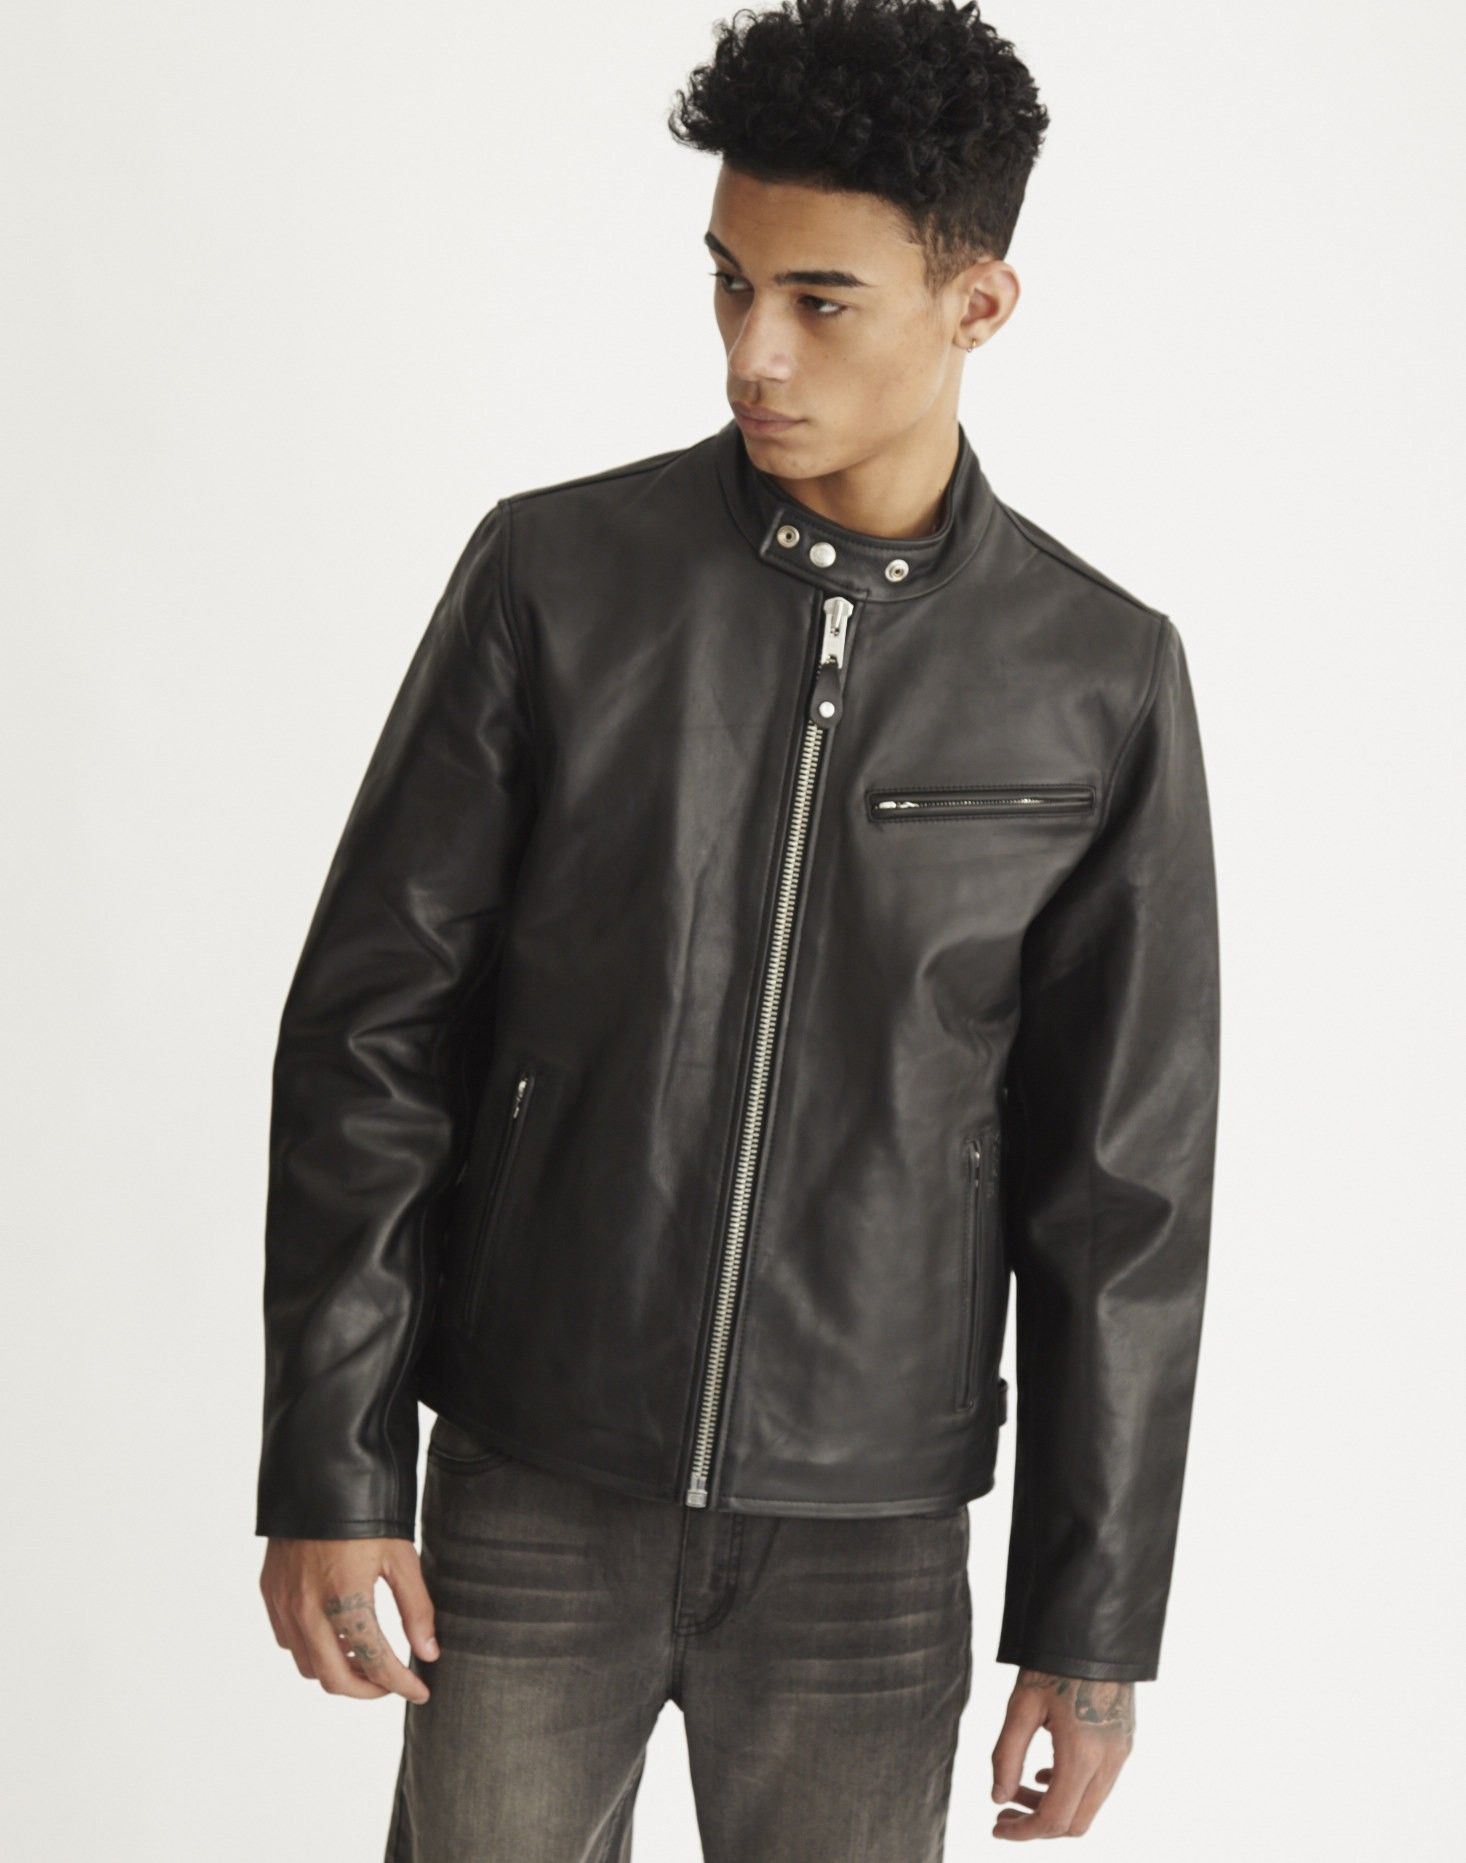 Schott NYC Racer Jacket | Shop men's clothing at The Idle Man